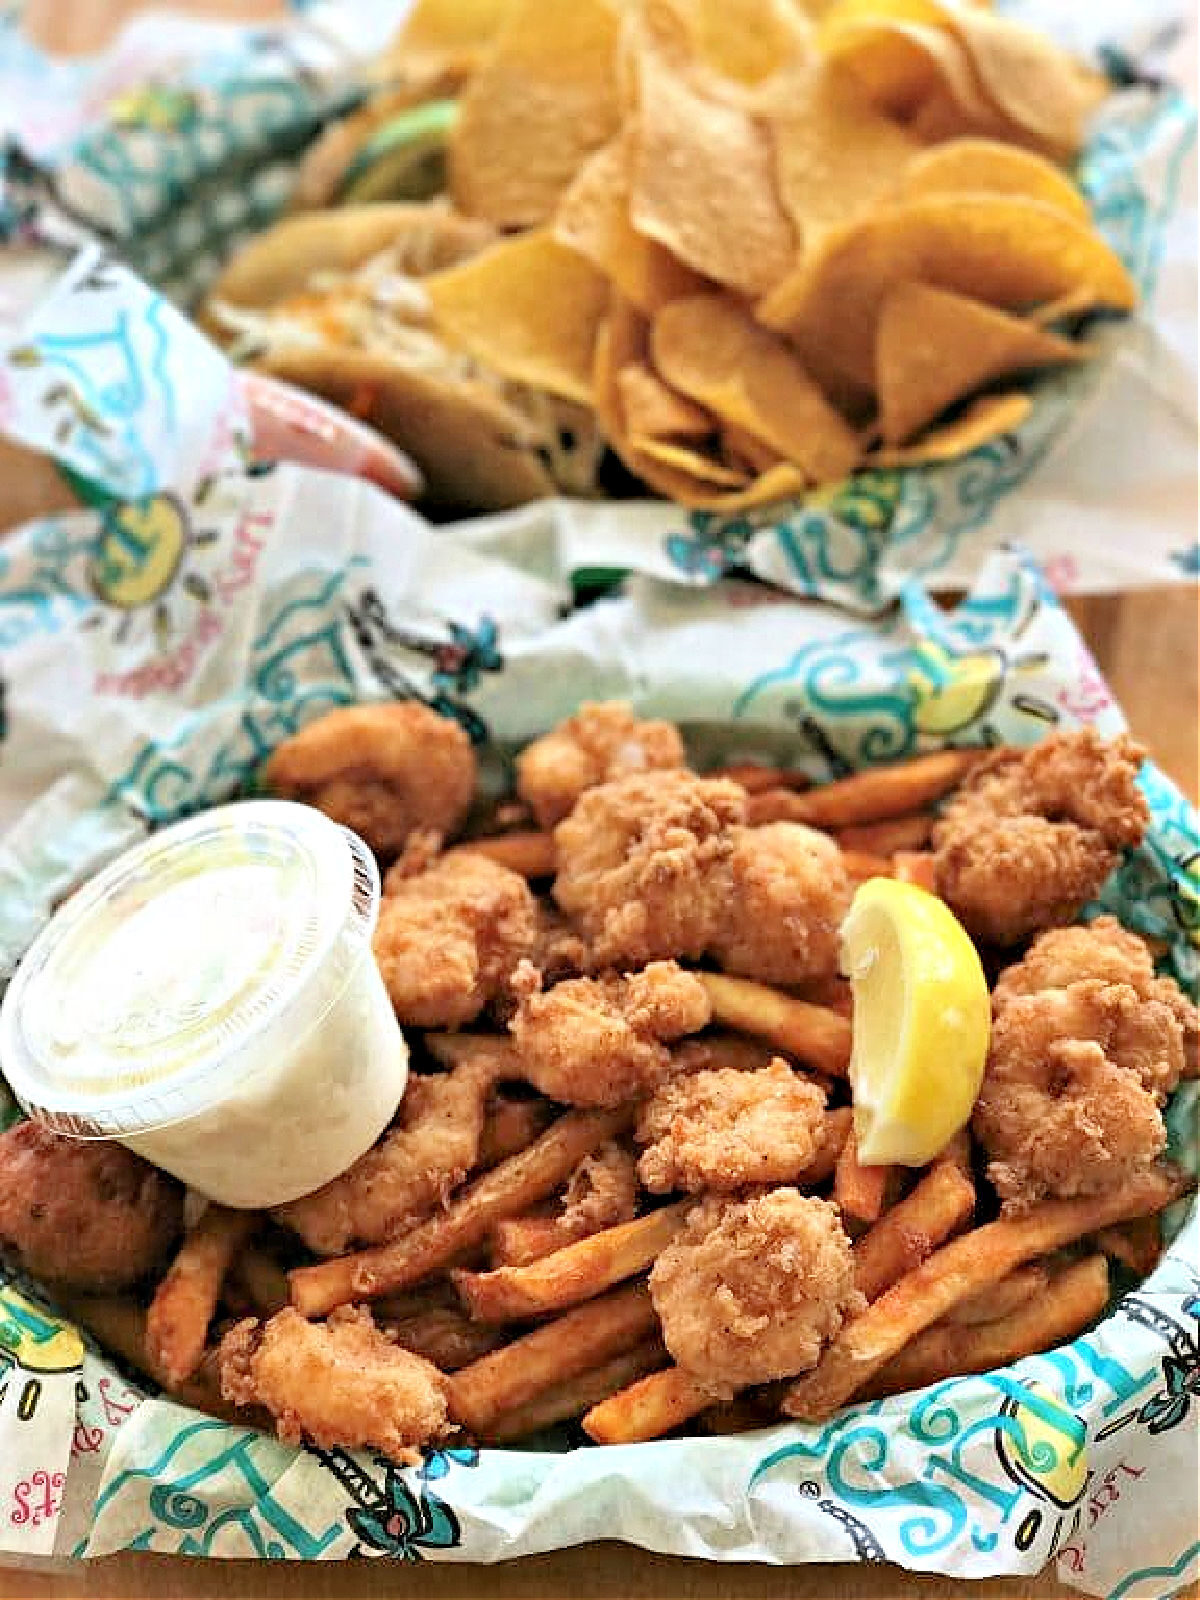 A basket of fried shrimp and French fries and slice of lemon.